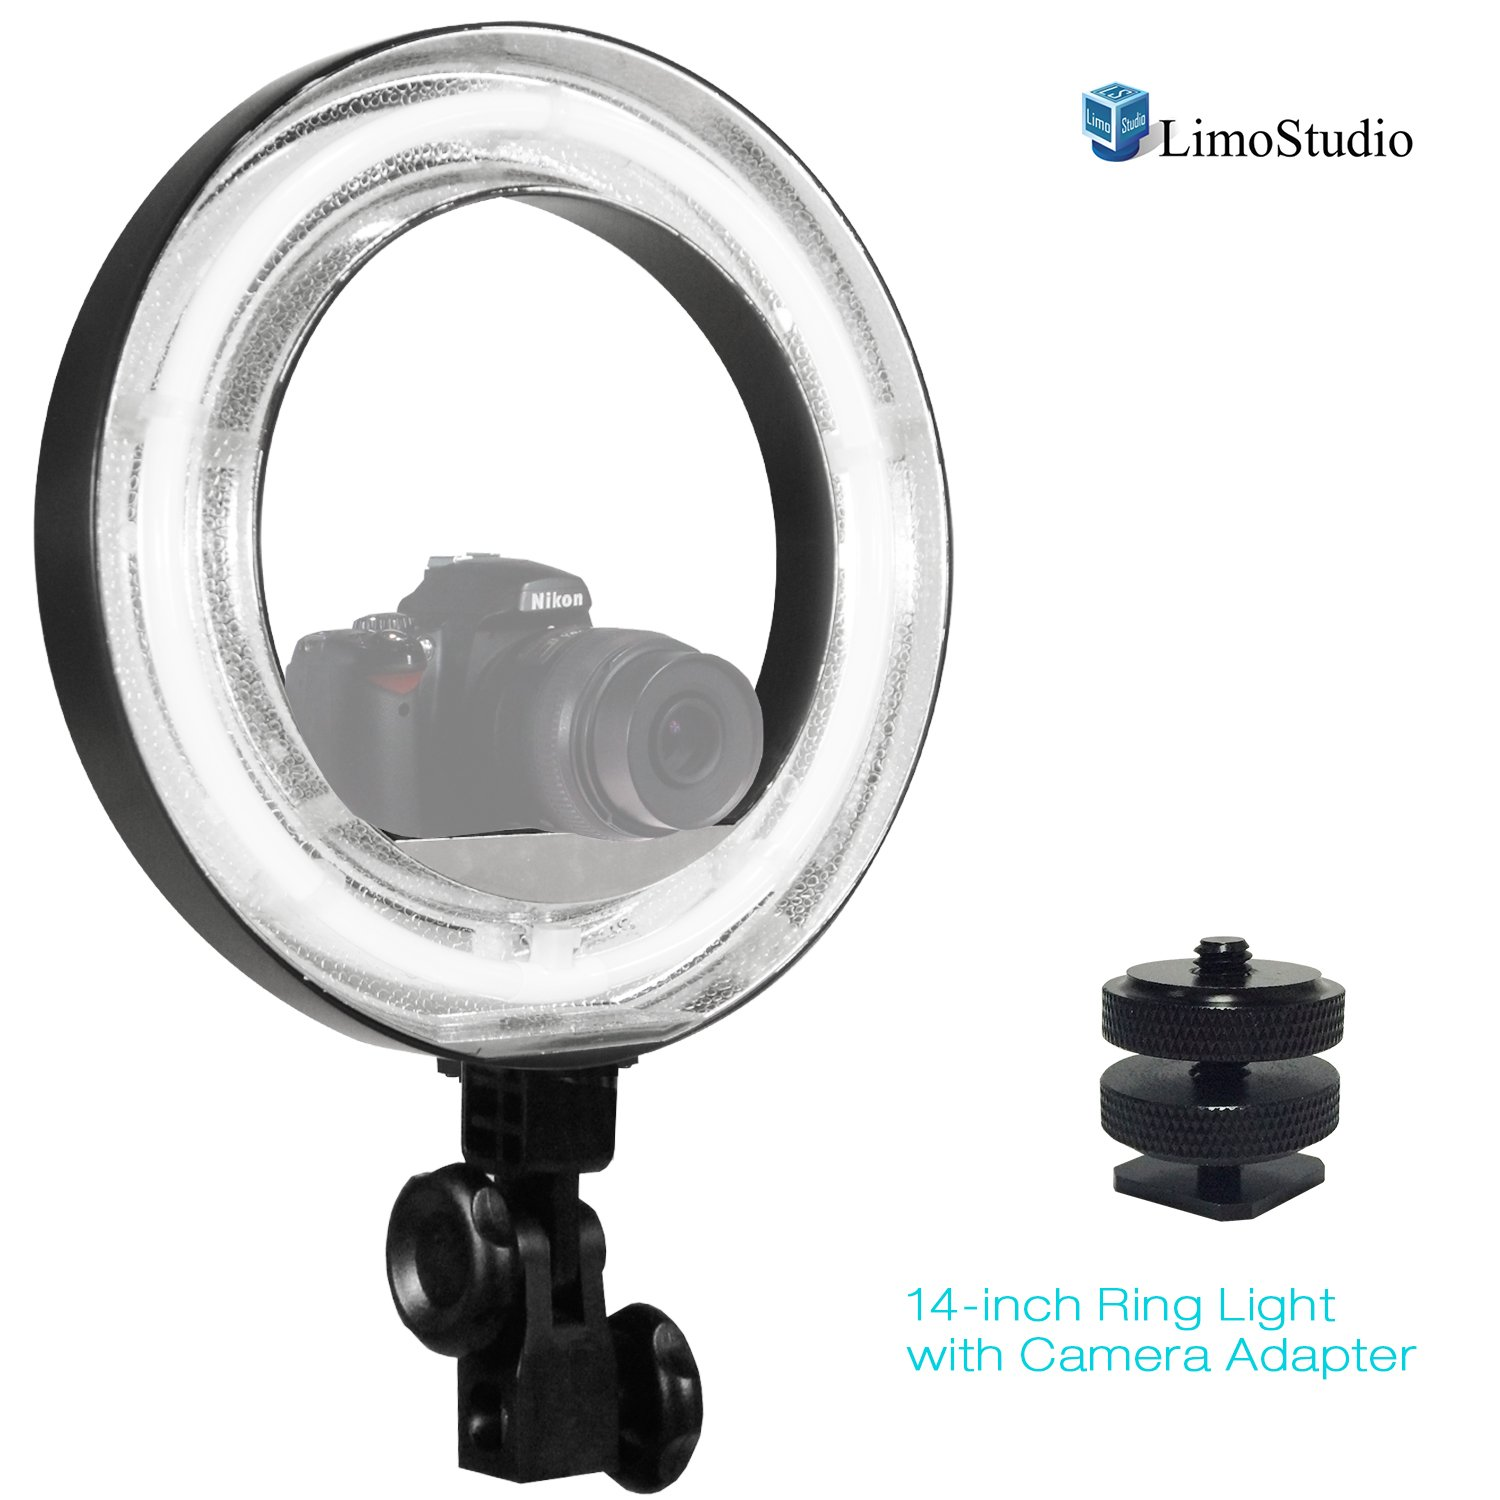 14-inch Continuous Round Ring Light with Camera Mounting Adapter & White Diffuser Cover for Soft Light, Professional Photo Video Shoot, Beauty Facial/Commercial Product Shoot, AGG2387